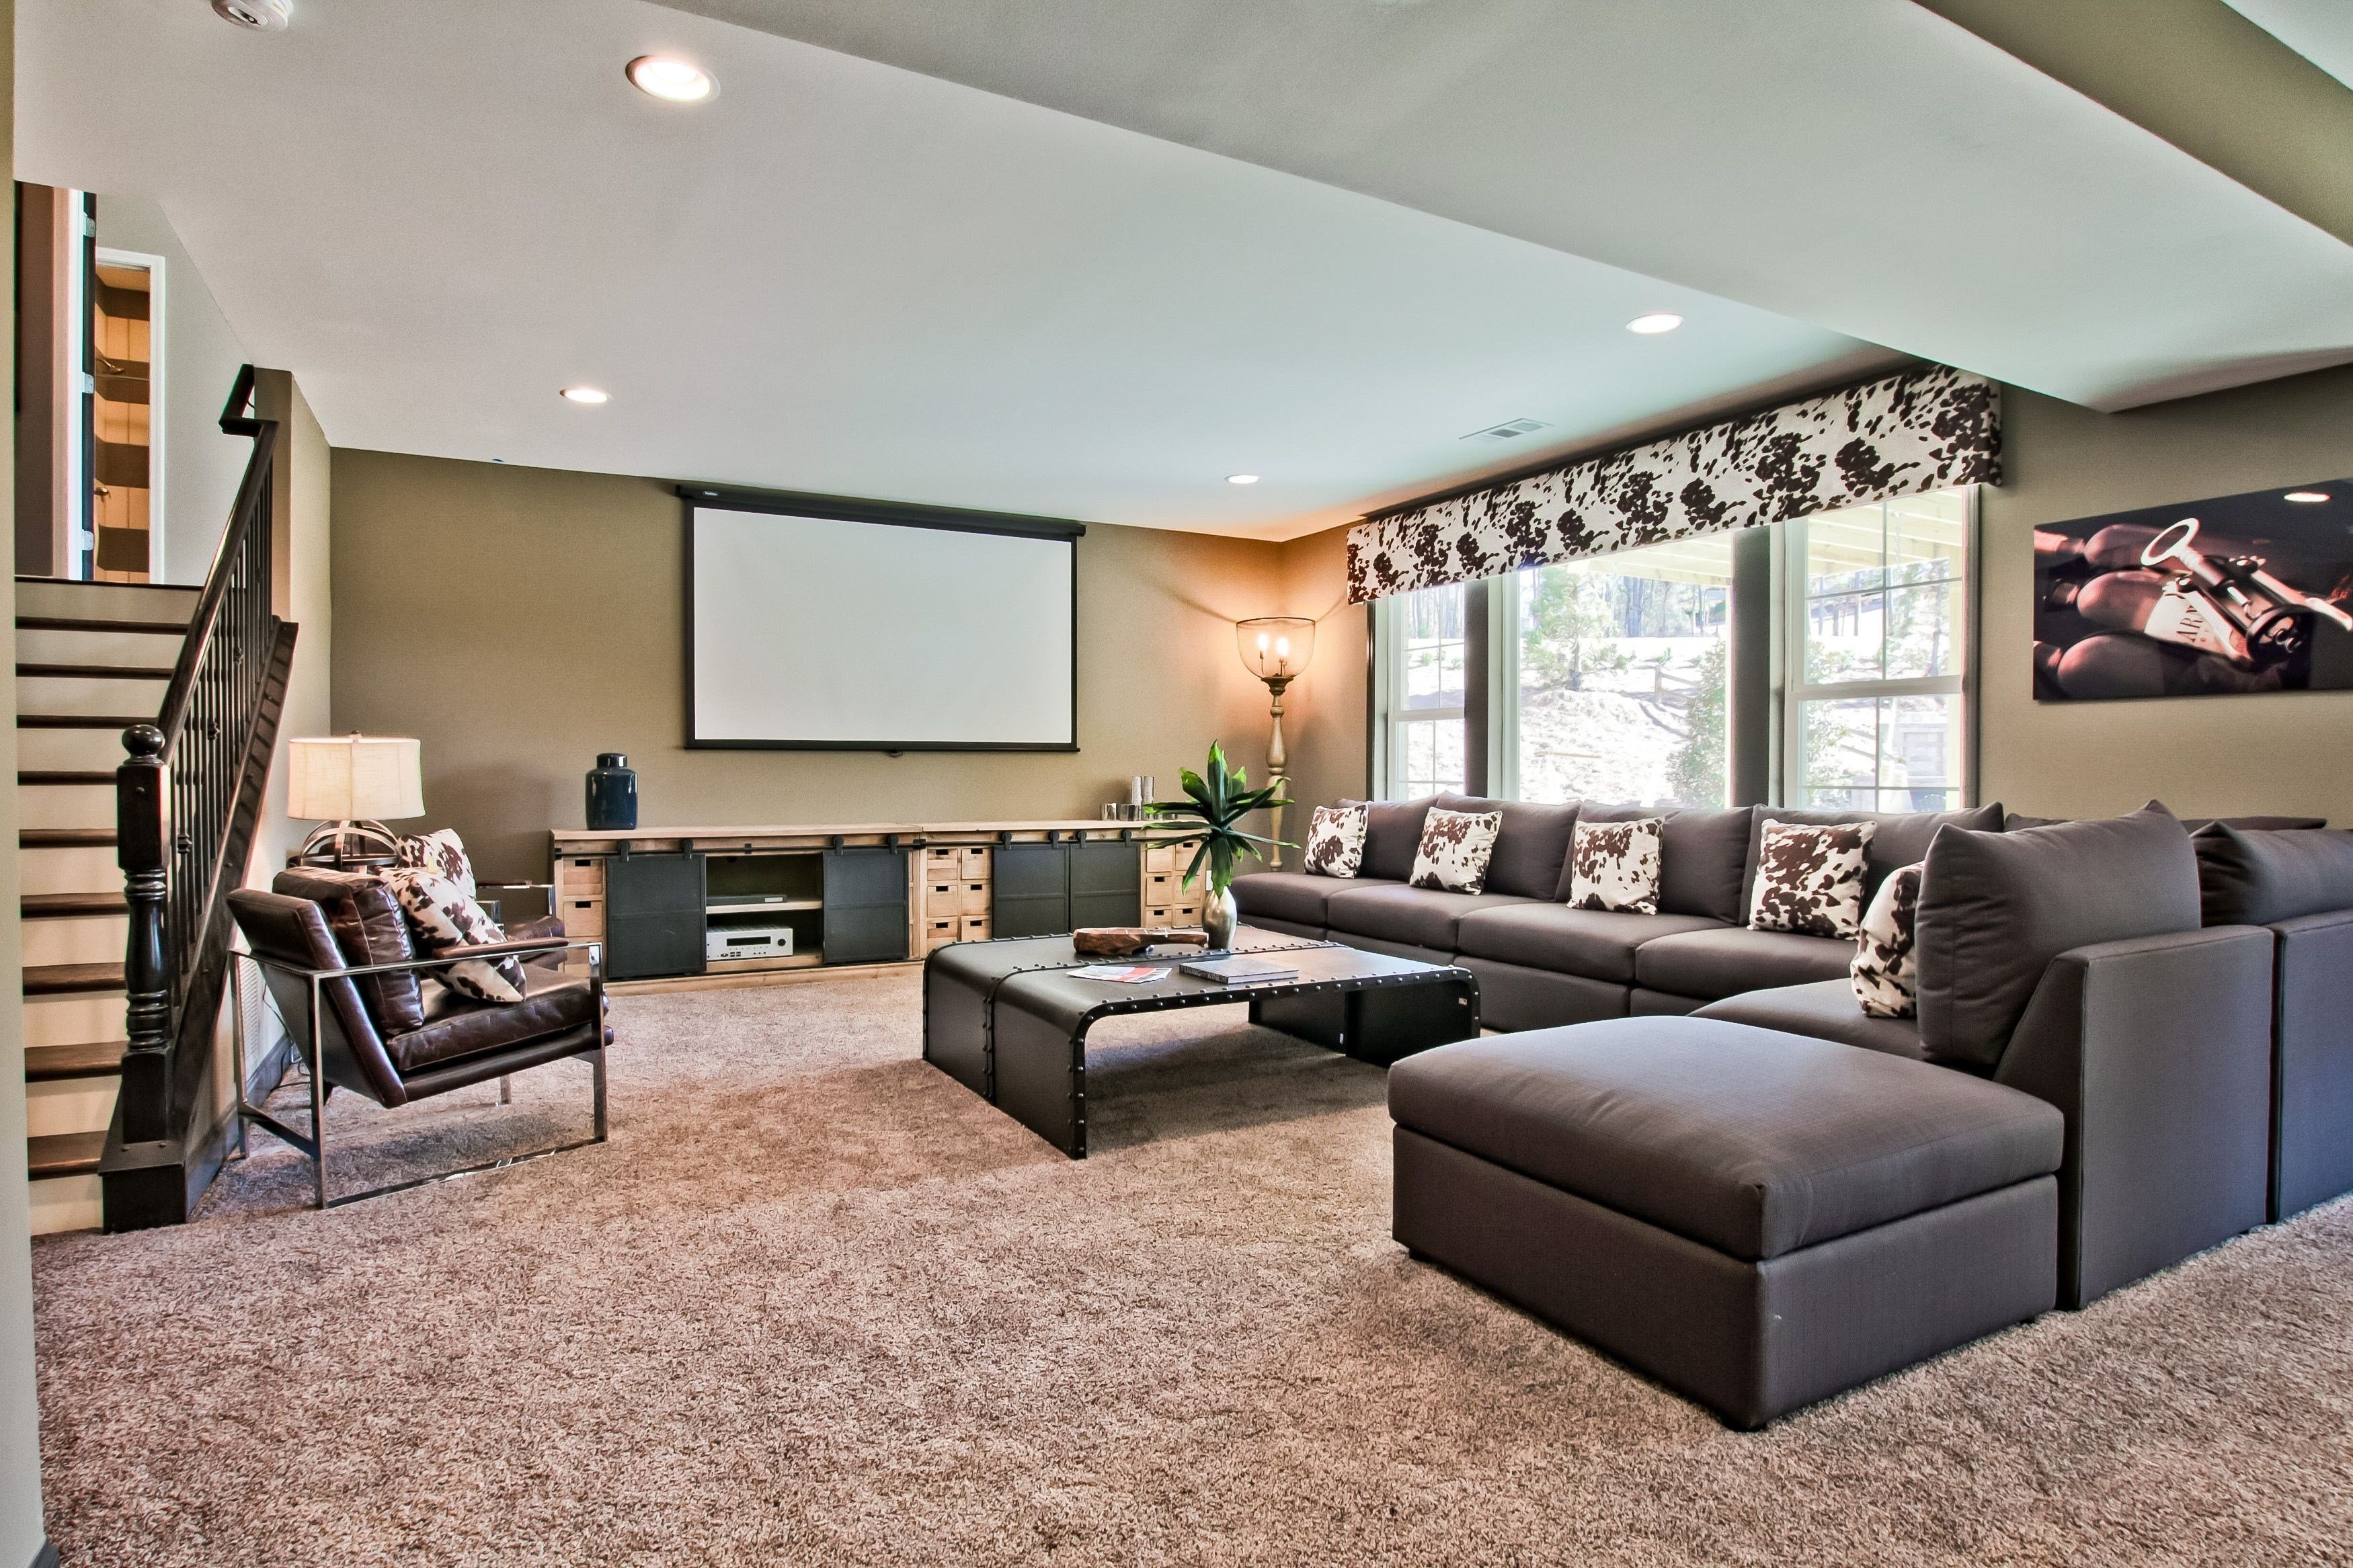 Best Inspirational Basement Bedroom Requirements Ohio Furnitureinredsea Com With Pictures